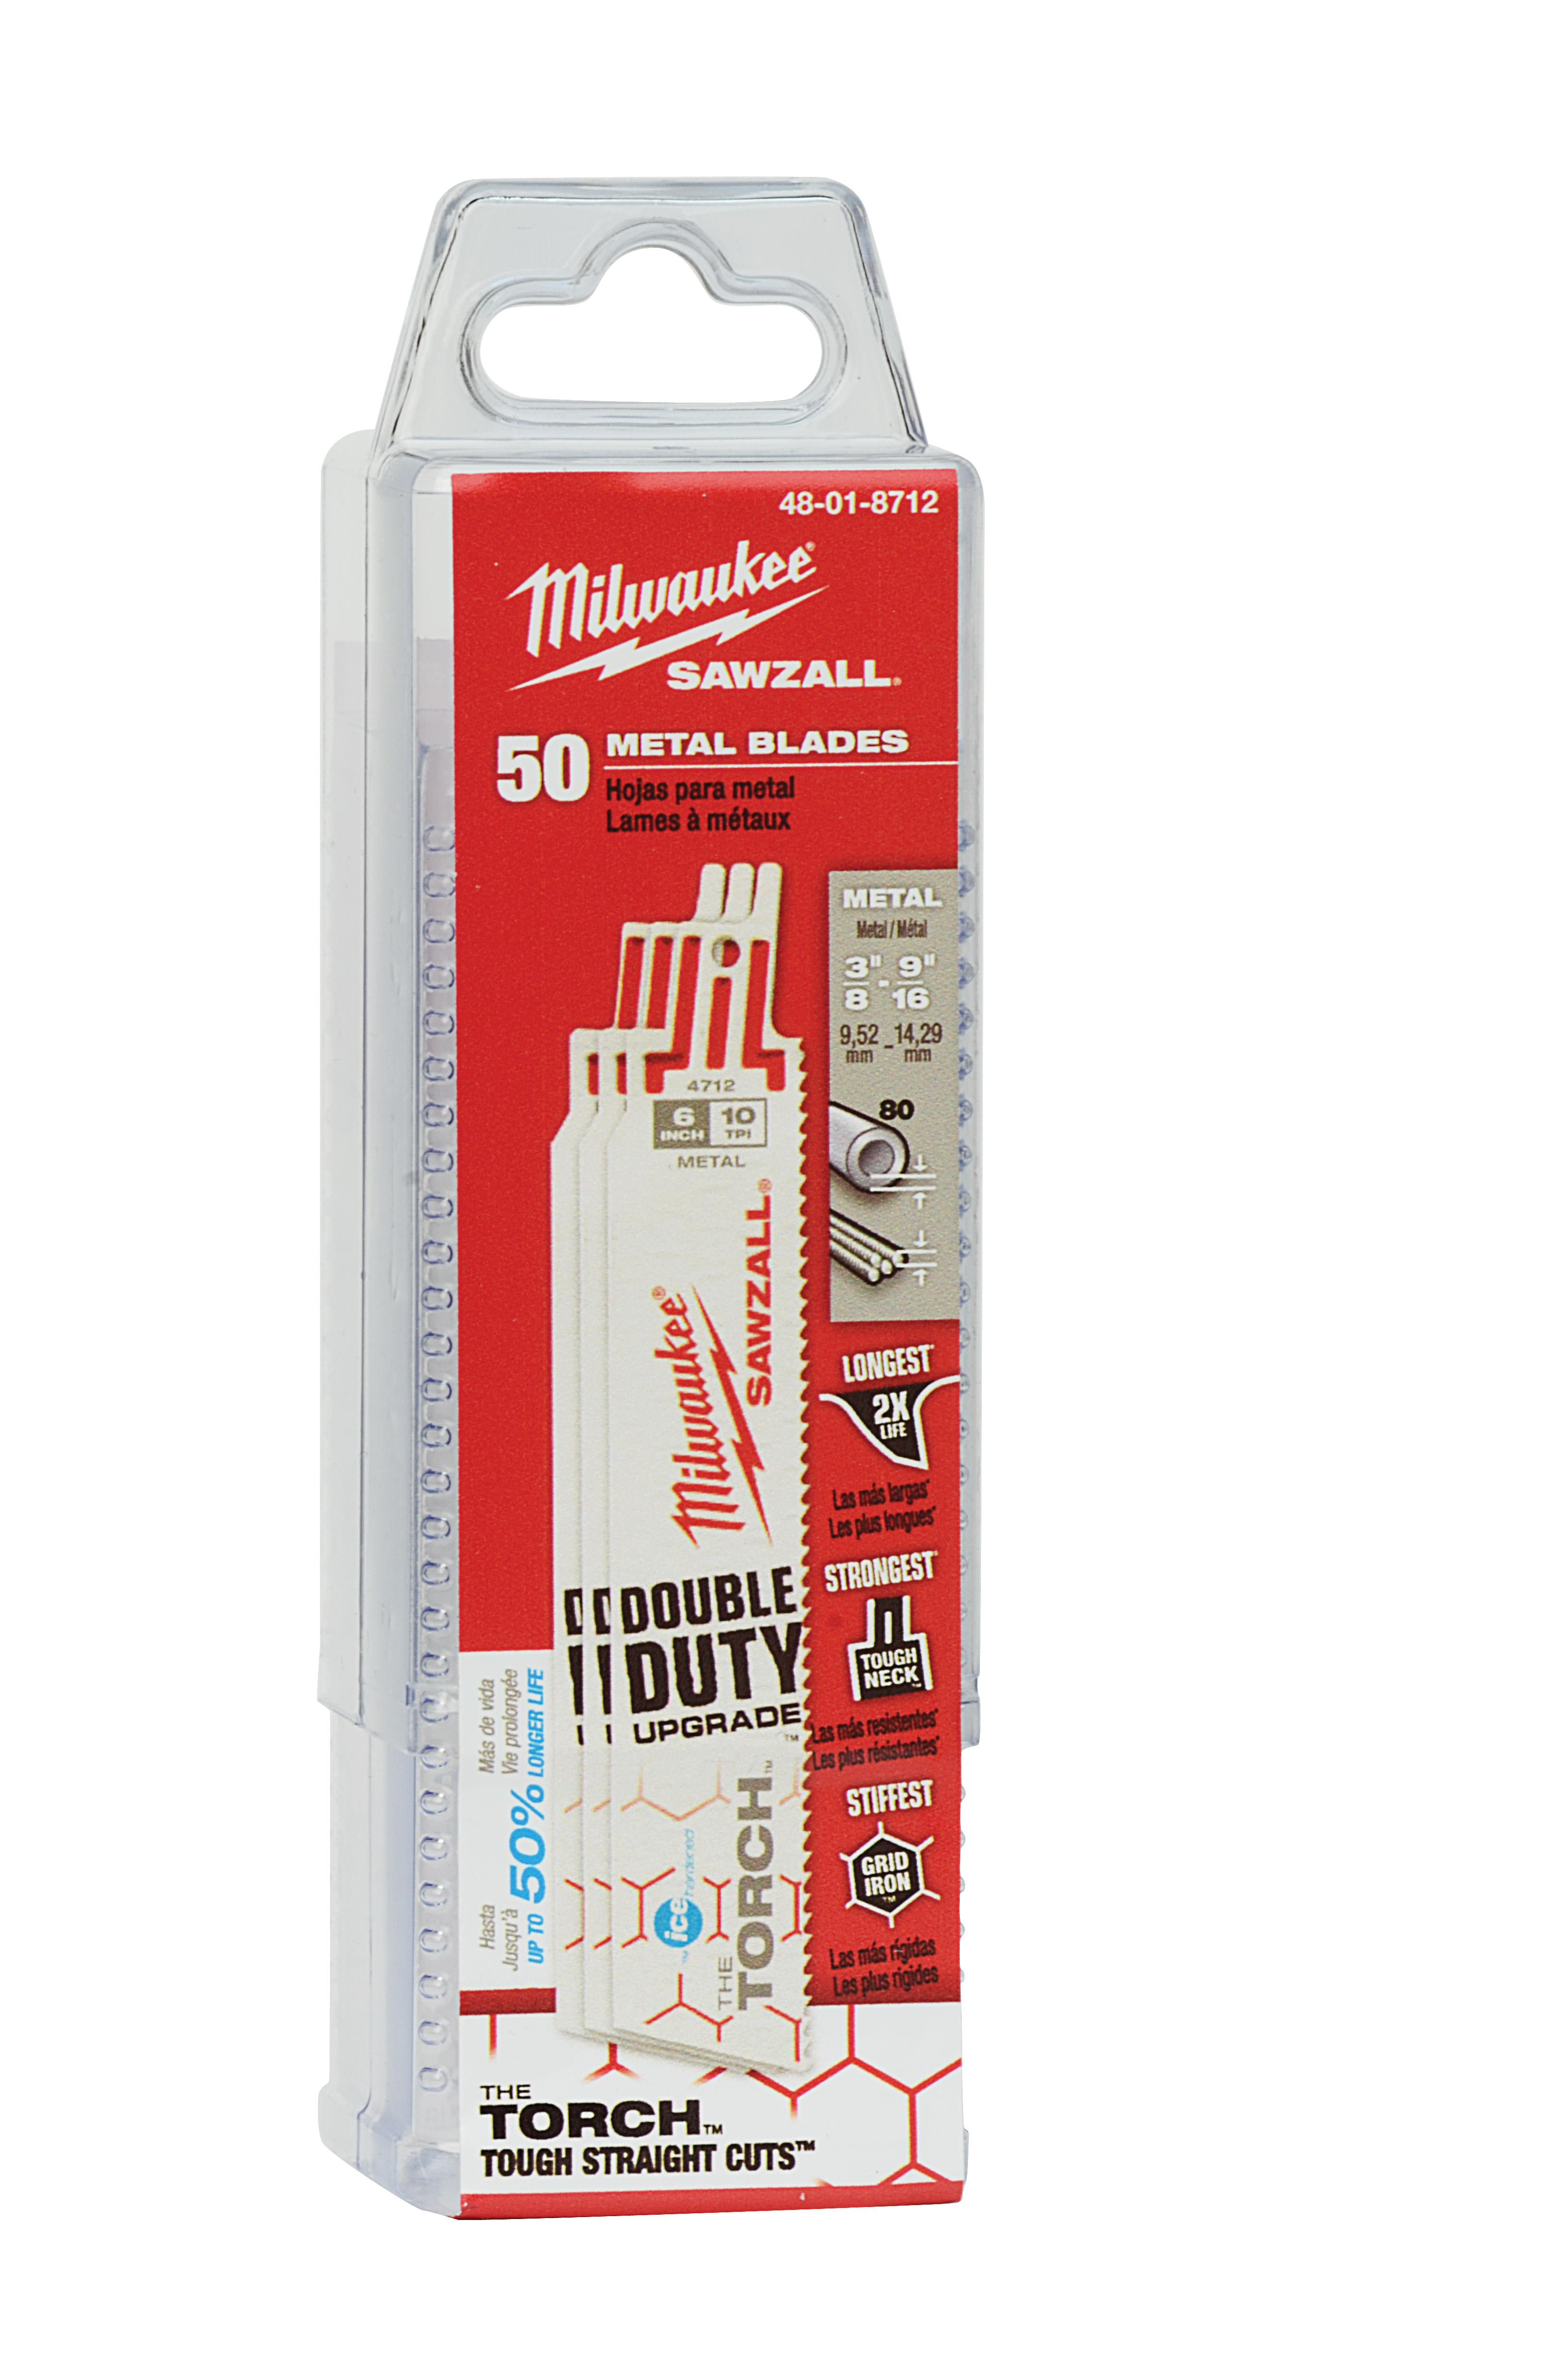 Milwaukee® SAWZALL™ 48-01-8782 Double Duty Straight Back Reciprocating Saw Blade, 6 in L x 1 in W, 14, Bi-Metal Body, Toothed Edge/Universal Tang